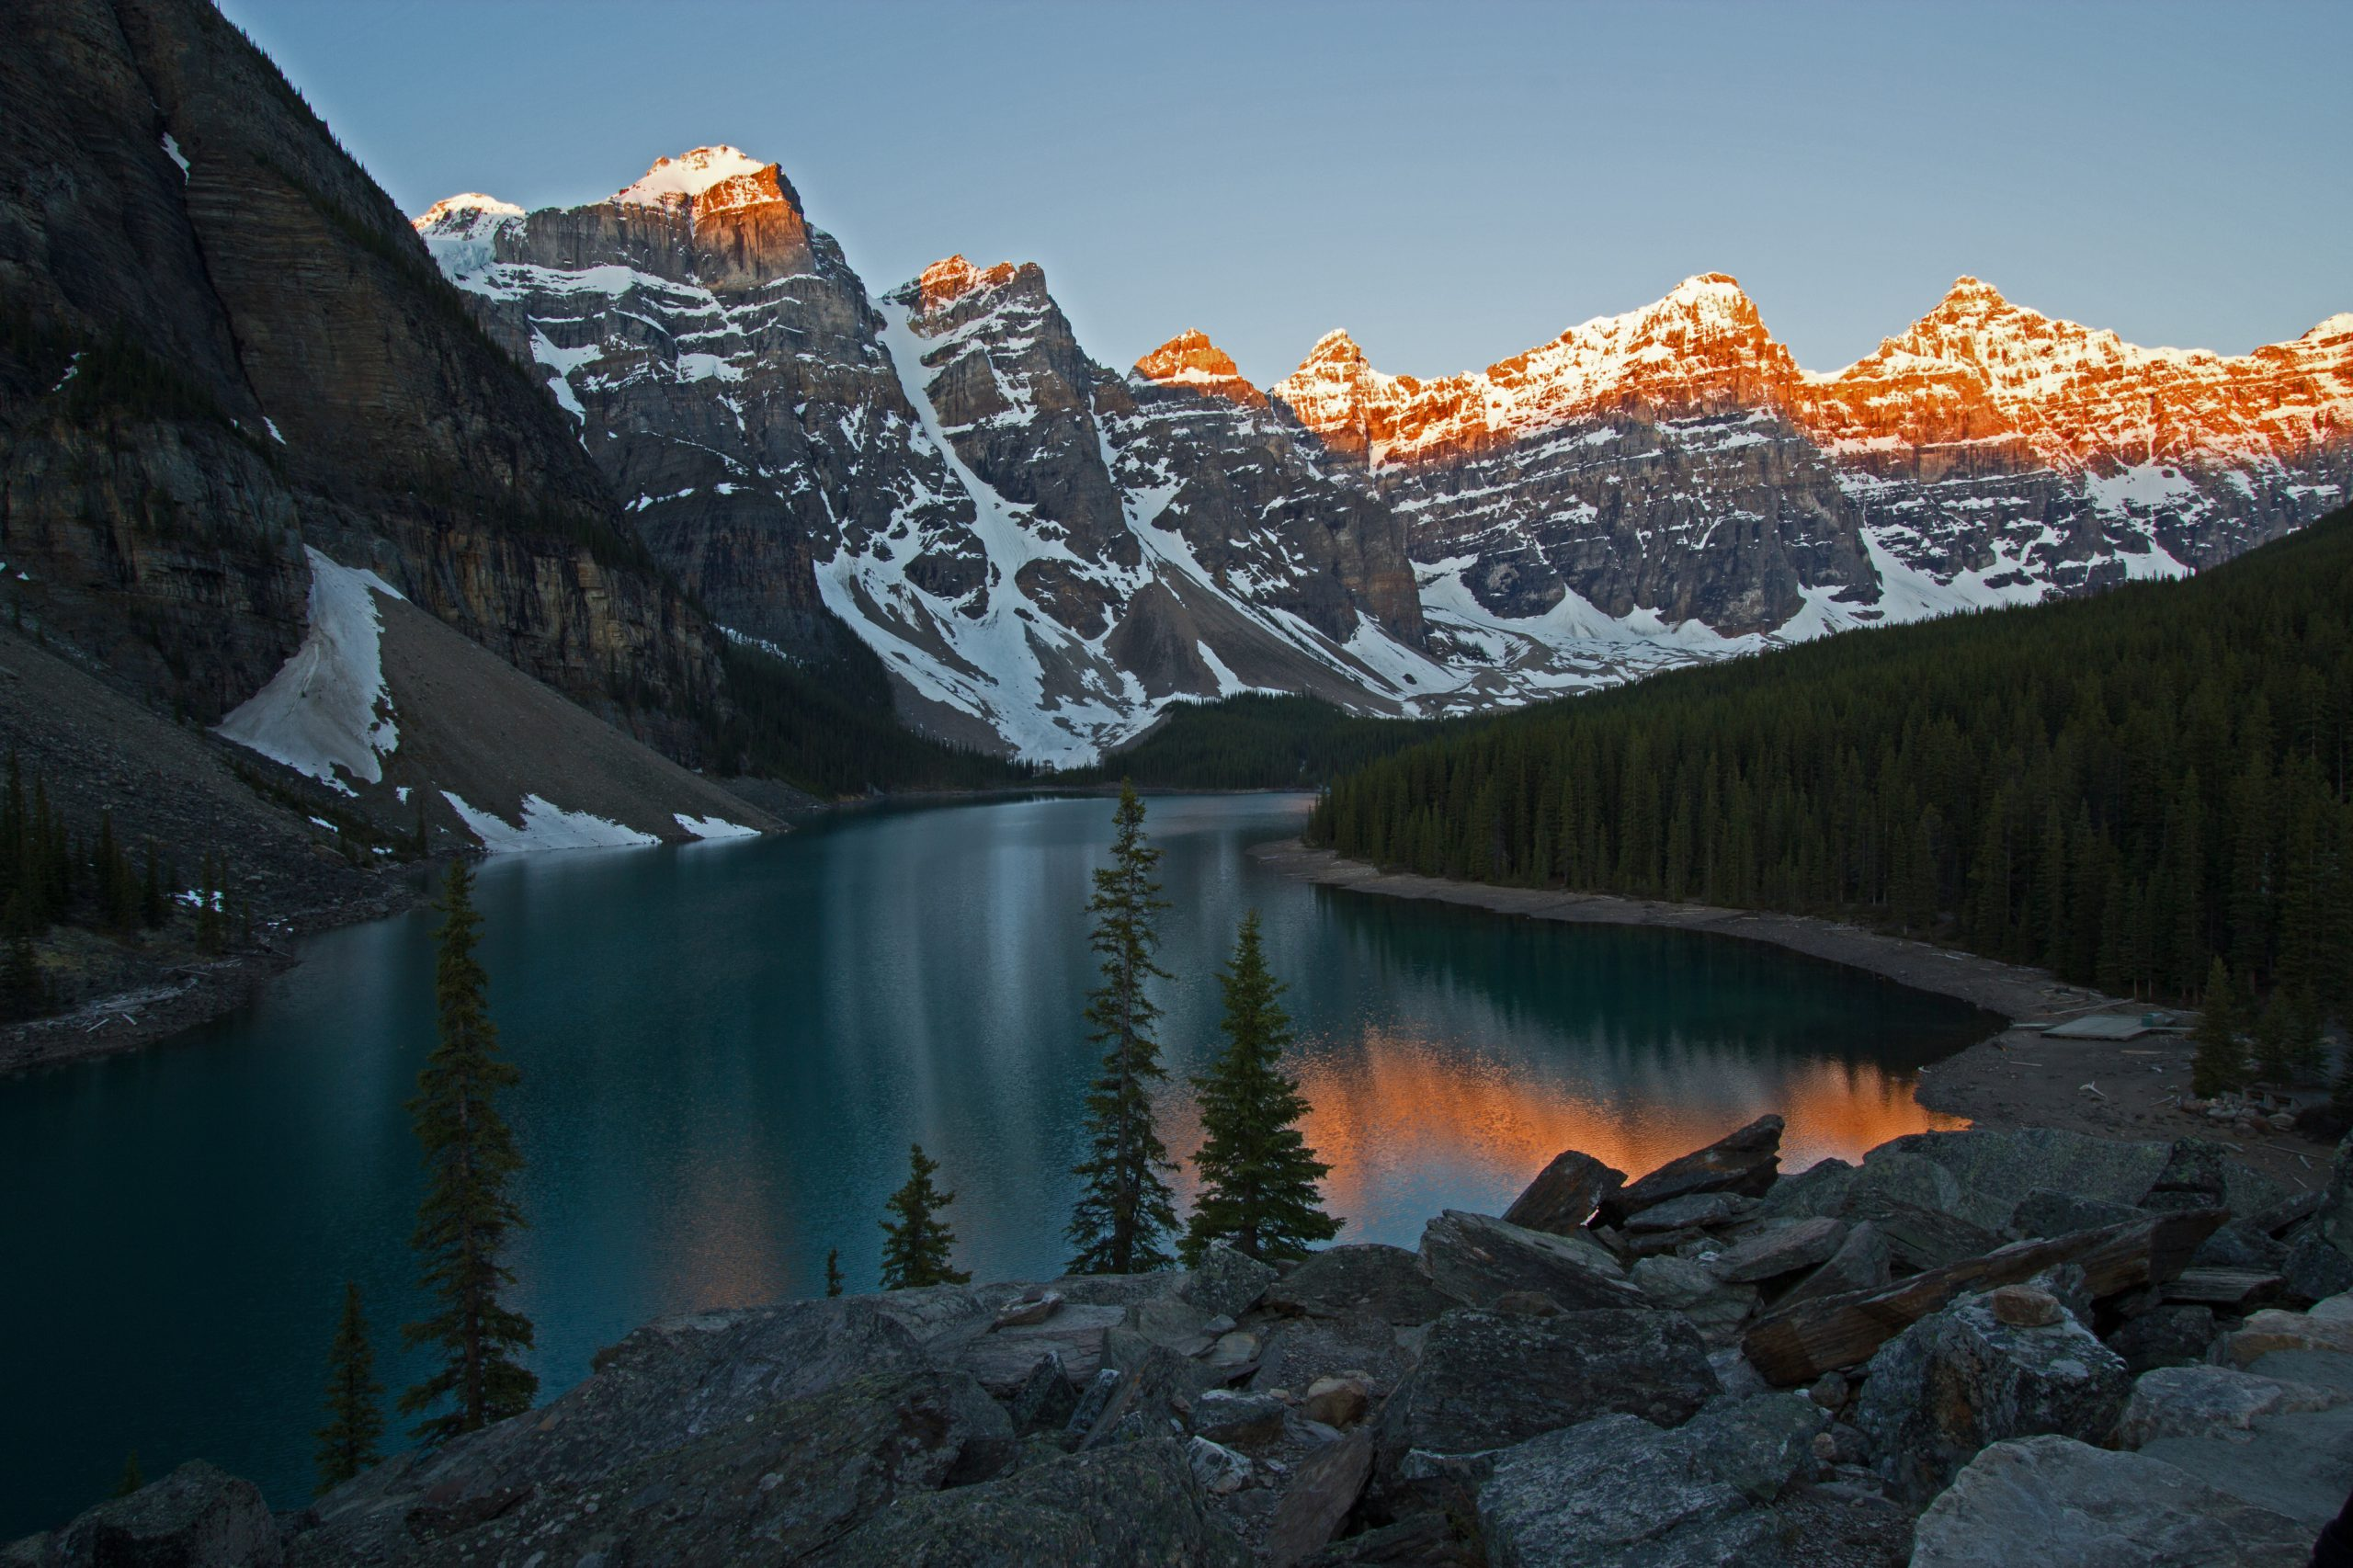 This Spectacular Lake is near Lake Louise, Alberta Canada.  It is also a Glacier fed lake.